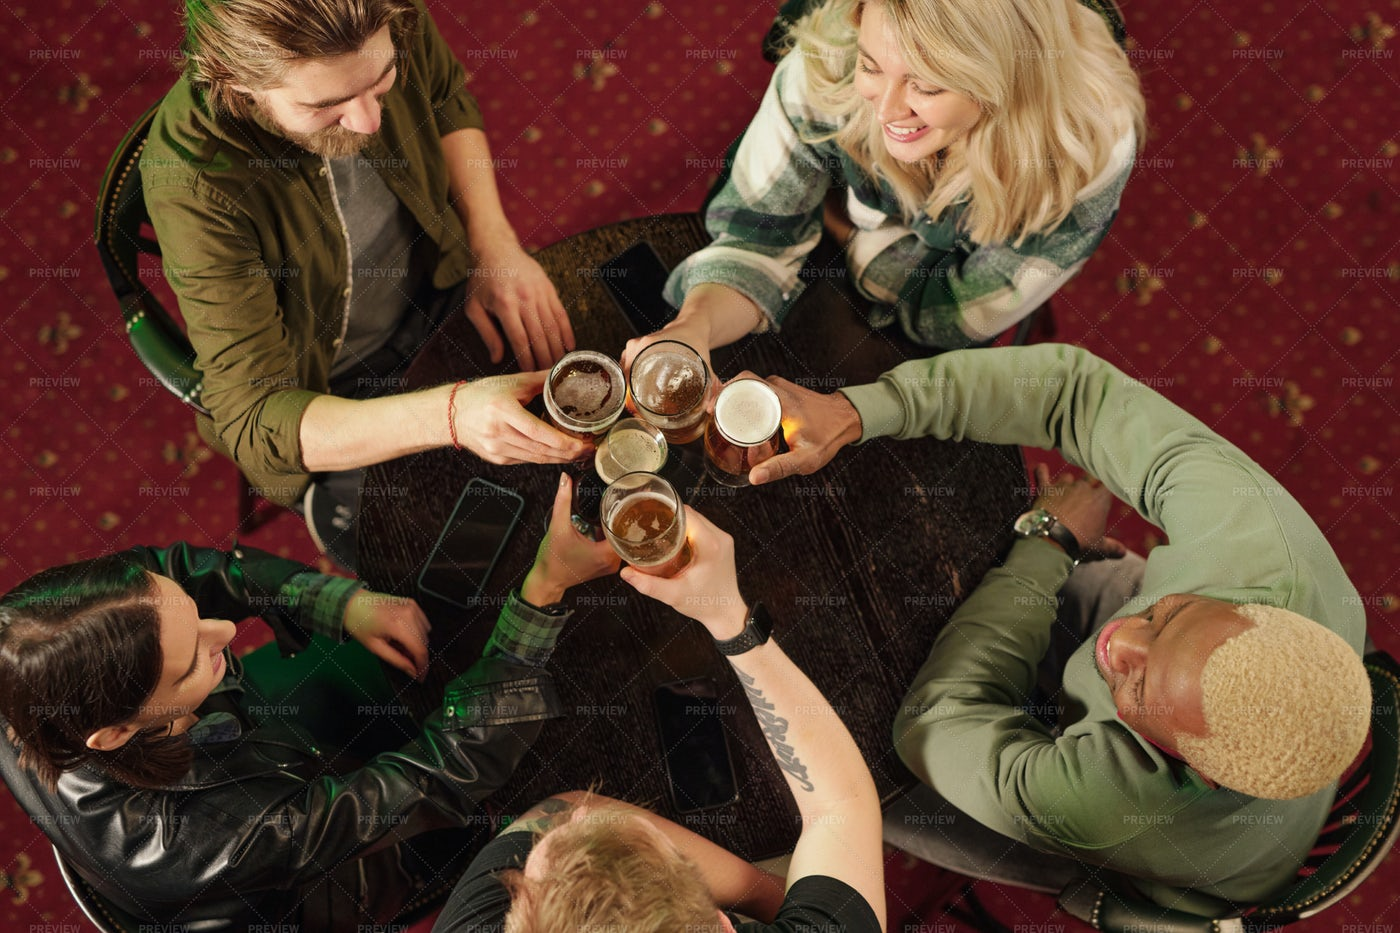 Friends Toasting With Beer In The Bar: Stock Photos